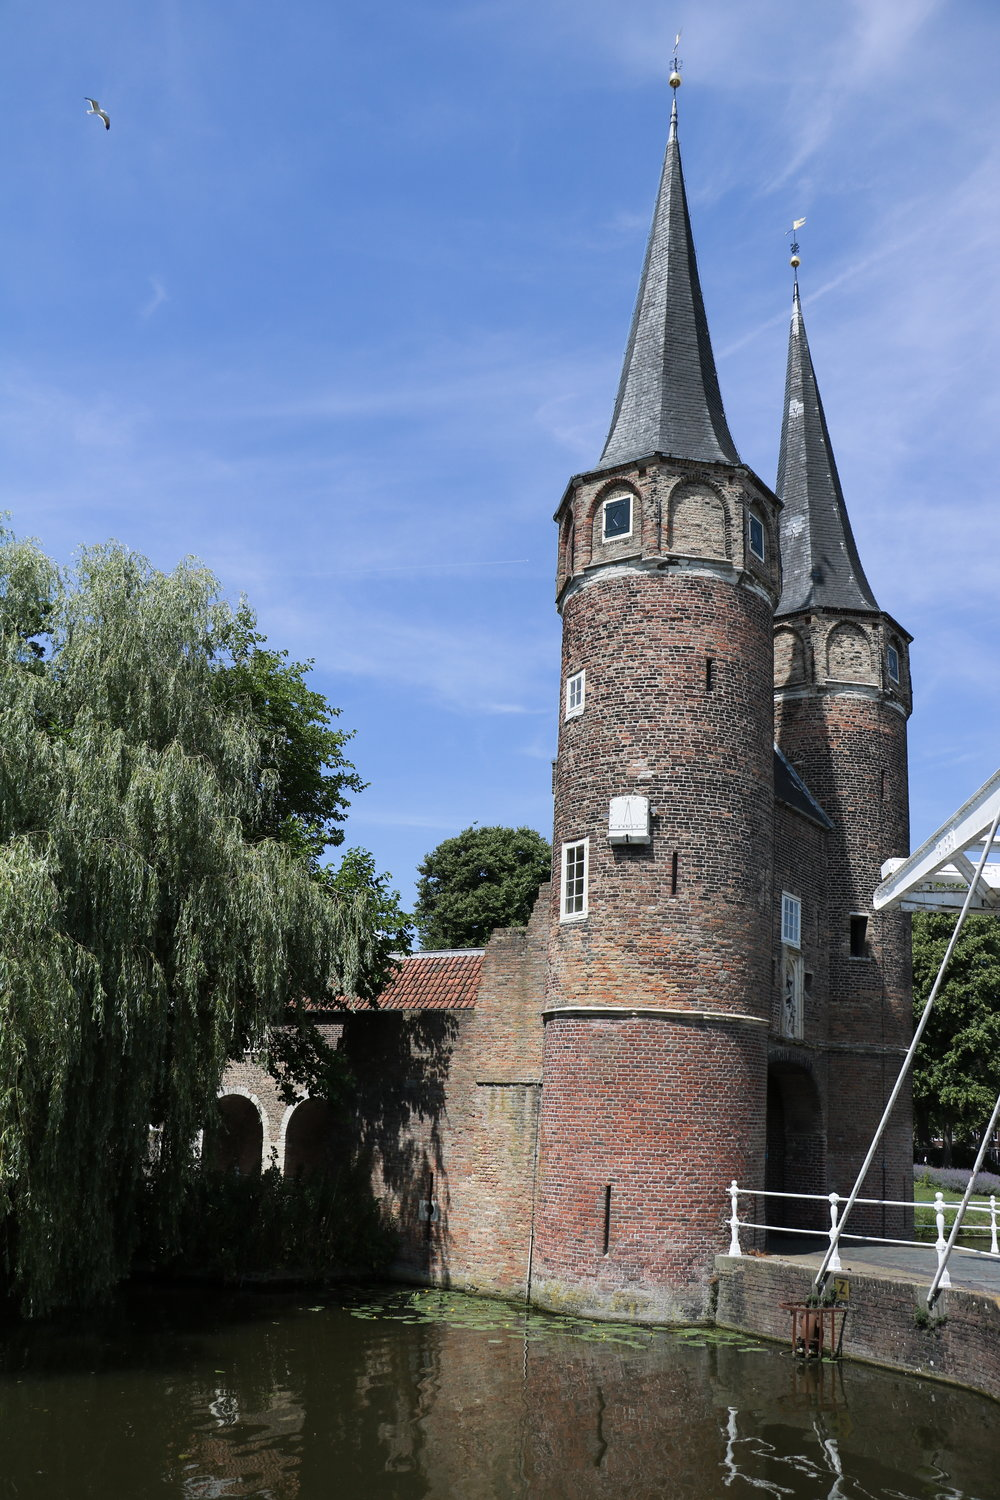 Delft-drawbridge-tower